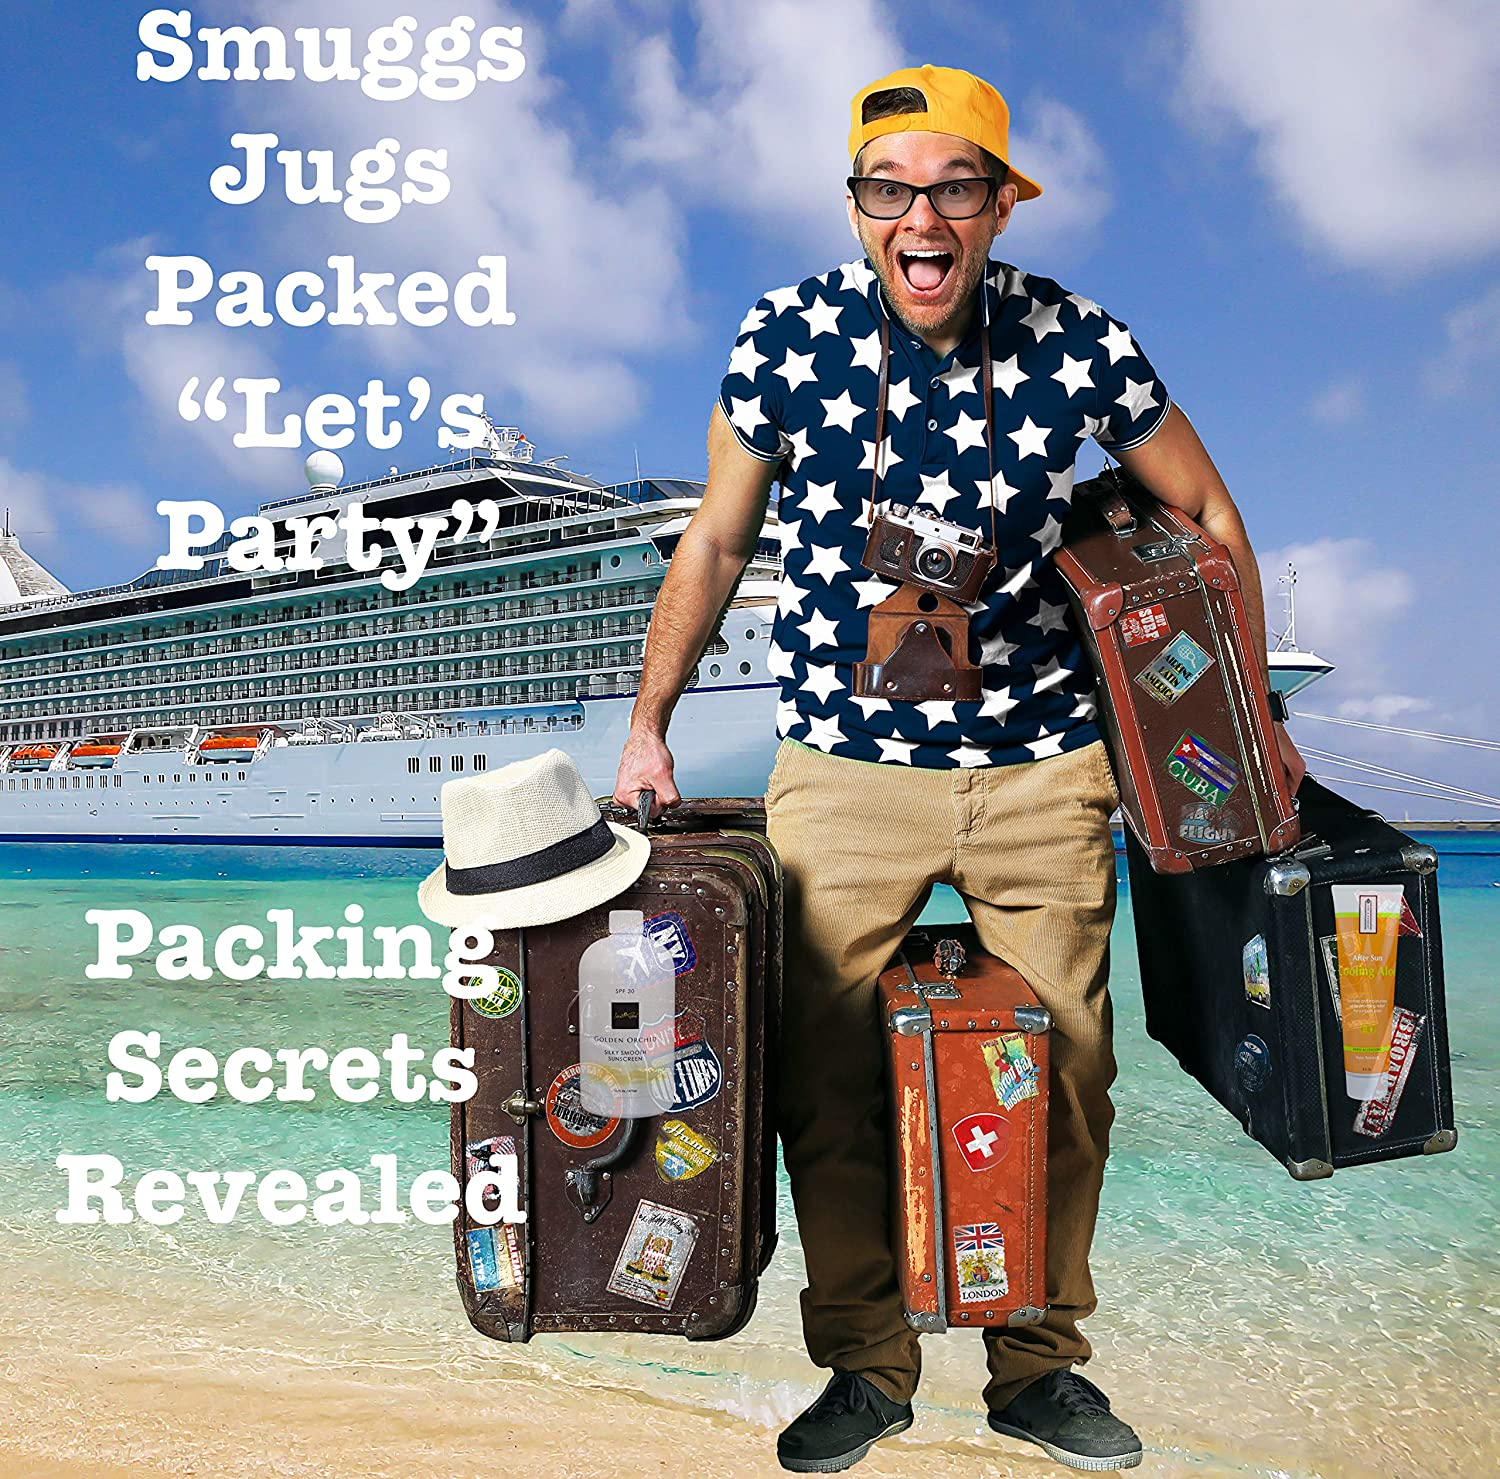 2-16oz 2-8oz Smuggle Booze Be a Rum Runner Cuise Pool Concert Smuggs Jugs Flask 2-Bottle 2-Tube